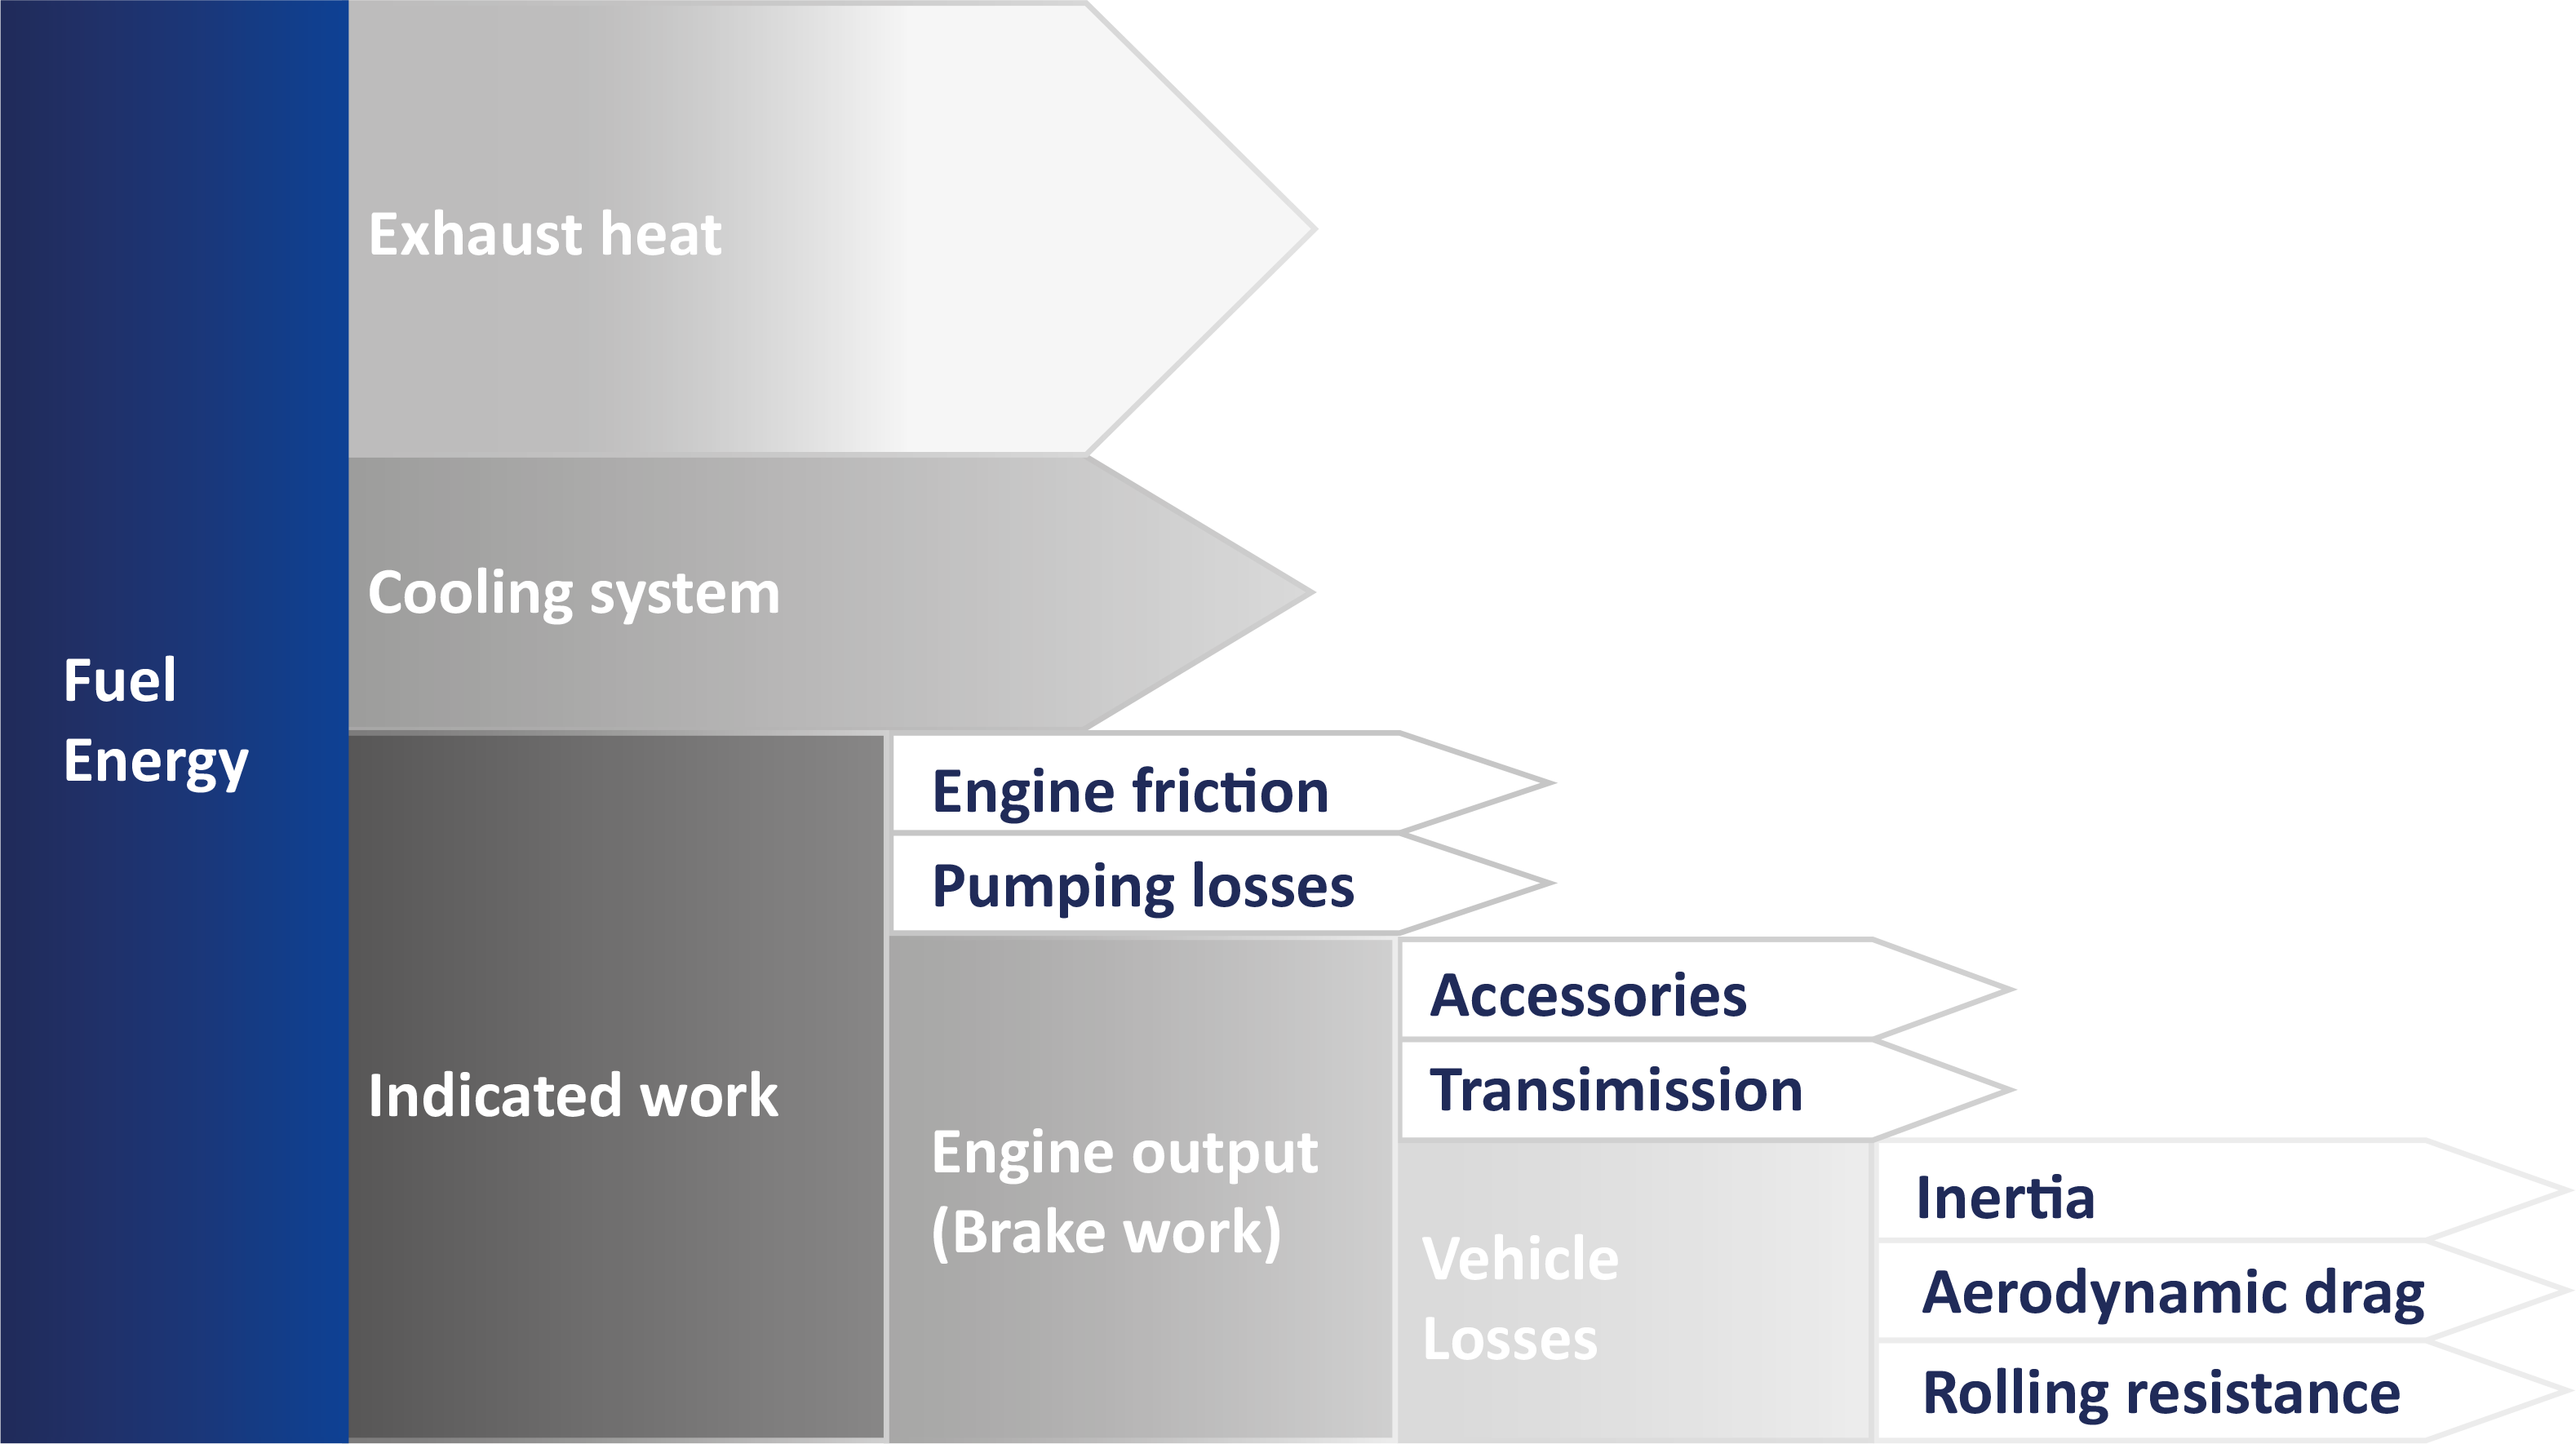 How does RR contribute to vehicle fuel consumption? What other factors contribute to fuel consumption?